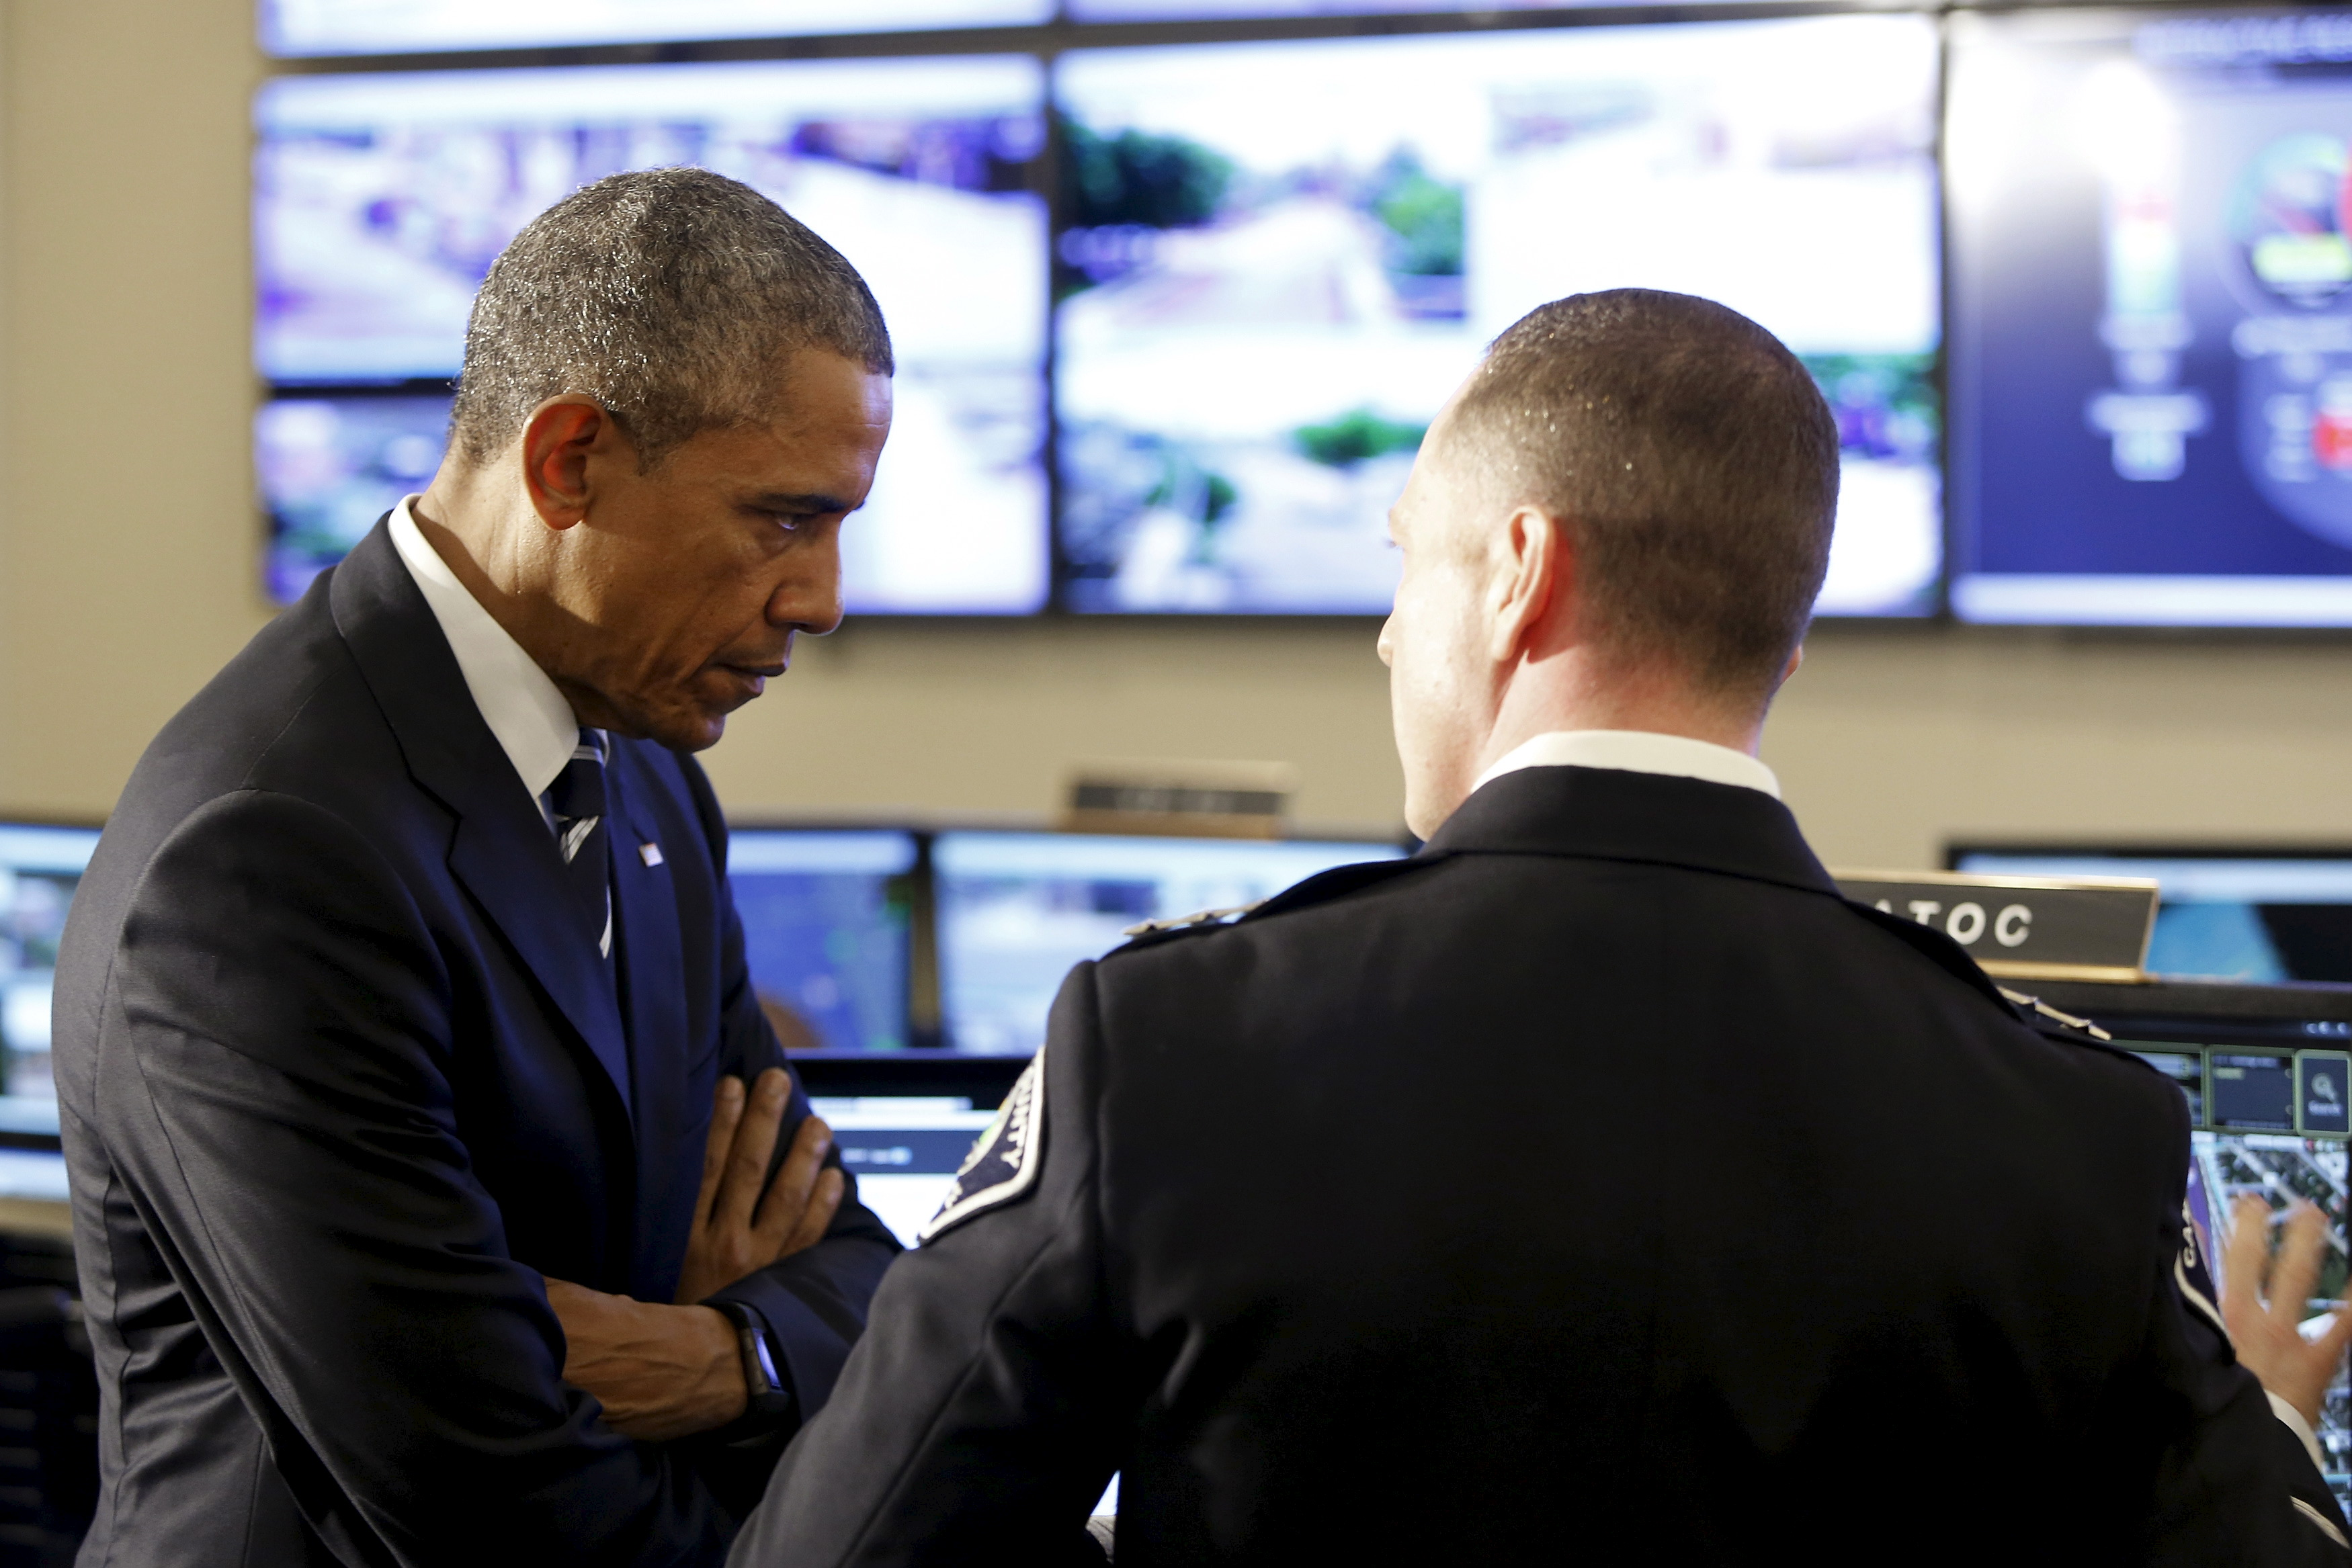 U.S. President Barack Obama (L) speaks with Camden County Police Chief John Scott Thomson as he tours the Camden County Police Department's Real-Time Tactical Operational Intelligence Center in Camden, New Jersey May 18, 2015. Obama is making the visit with law enforcement officials Monday to push efforts to encourage trust-building between police and the communities they serve. (REUTERS/Jonathan Ernst)